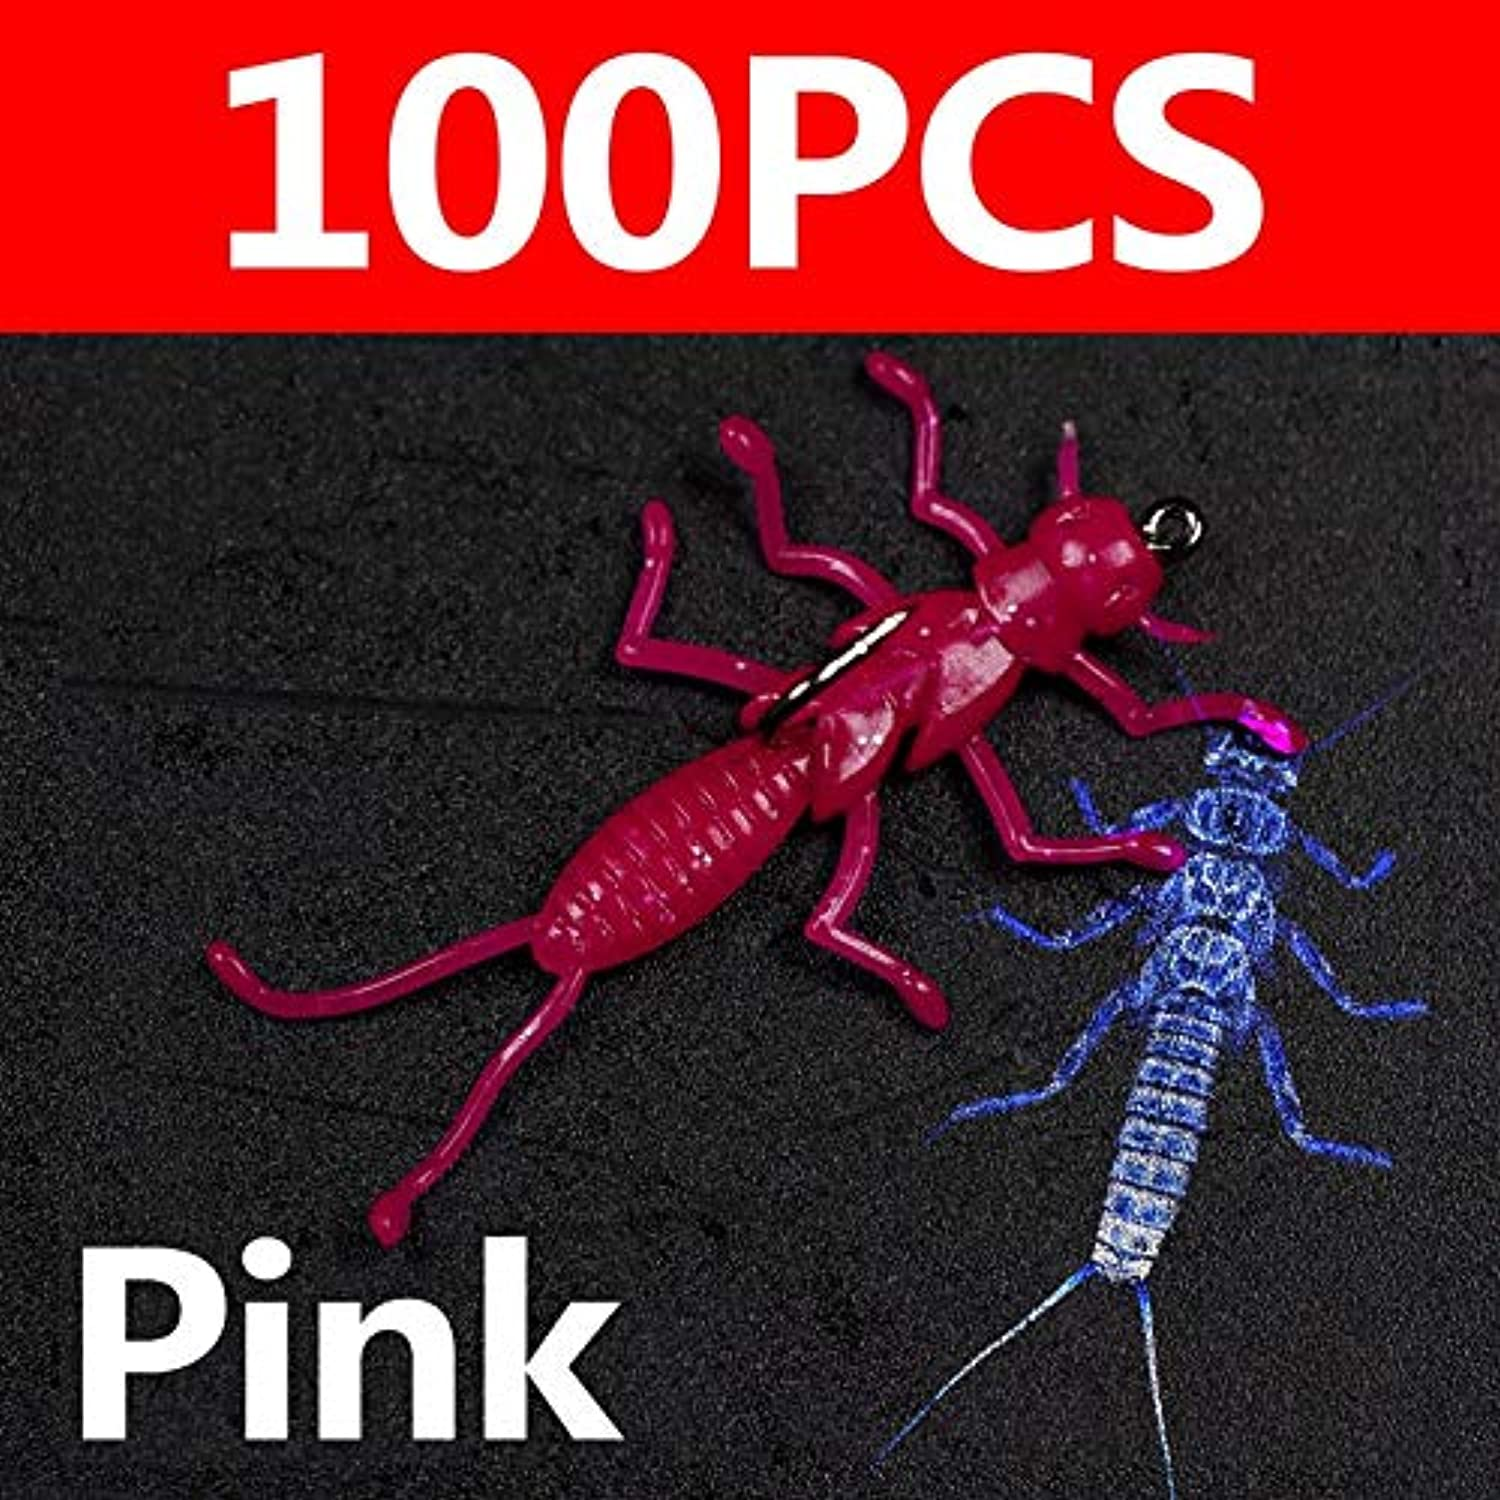 Generic Bimoo 100PCS Soft Stonefly Lure Bait for Crappie Trout Fishing Small Insect Fishing Lure with Hook Pan Fish Fishing 100pcs Pink